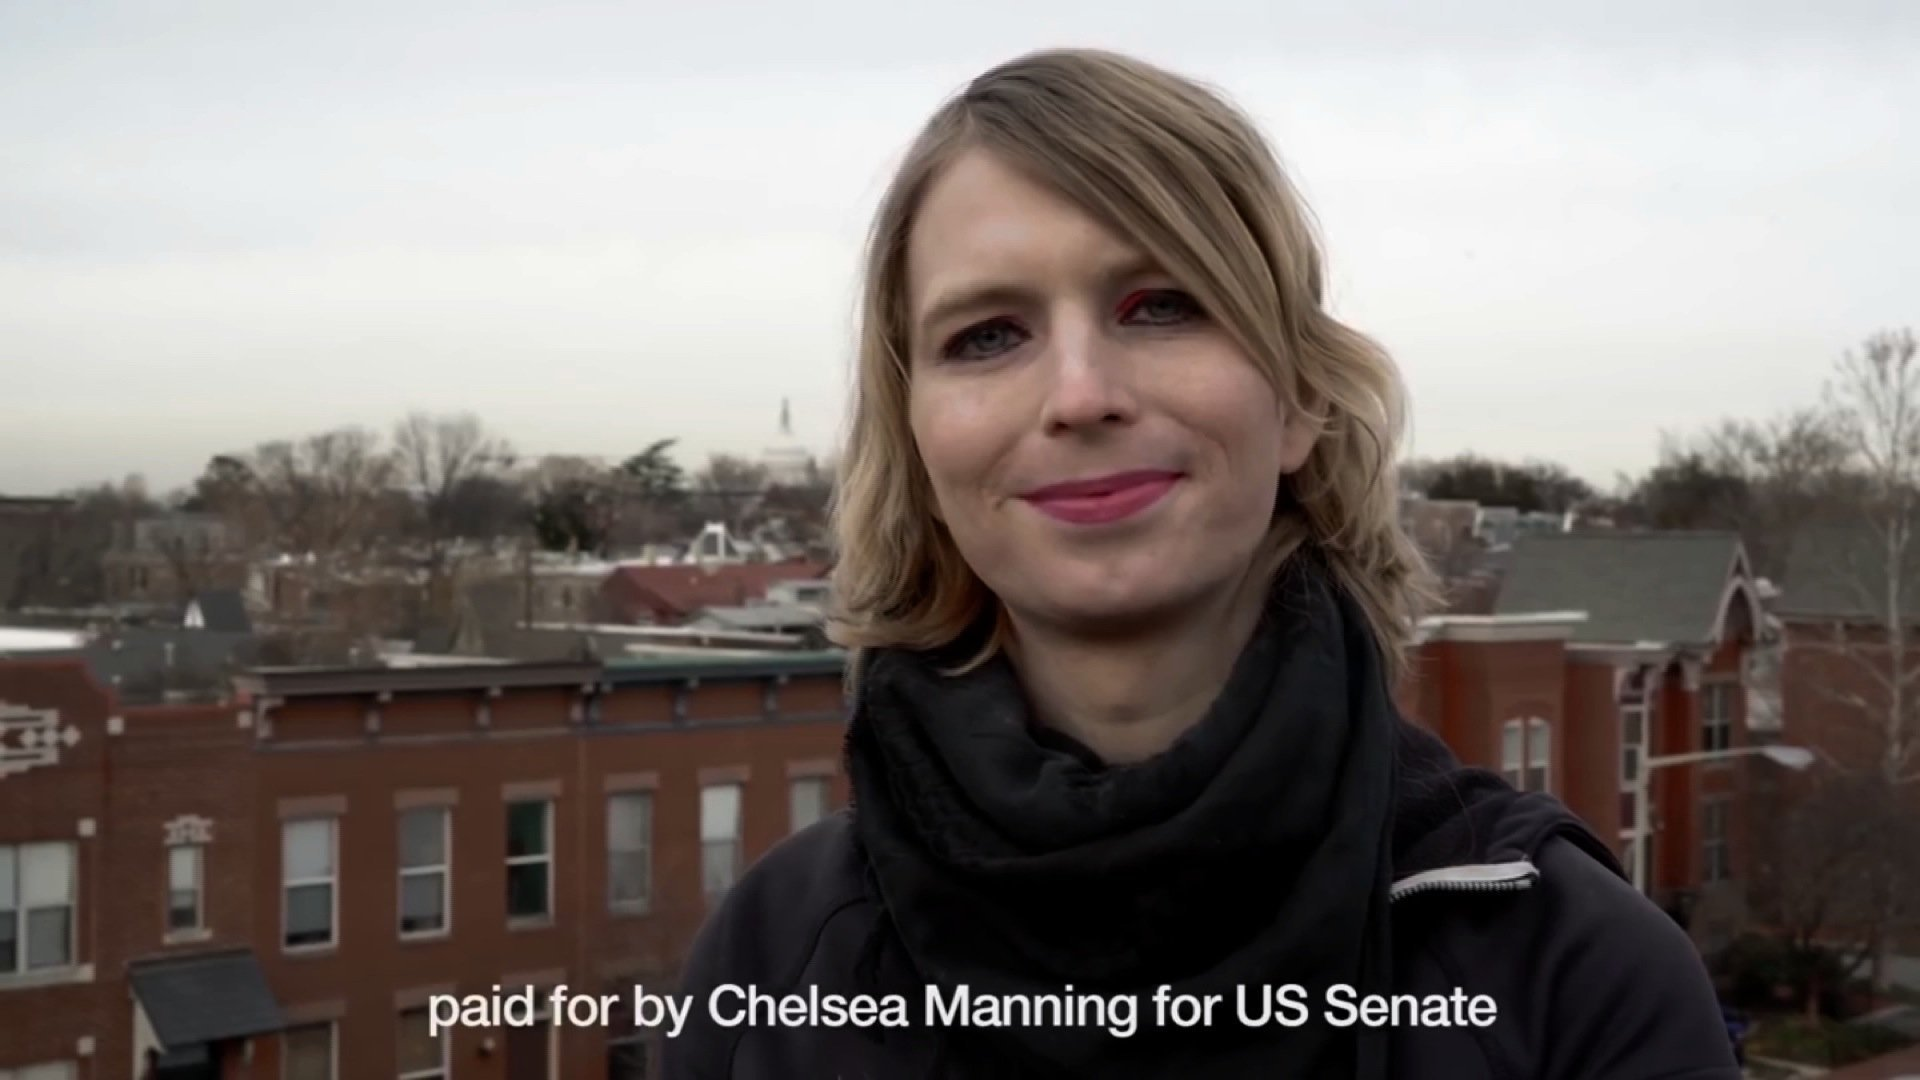 Chelsea Manning releases Senate campaign video